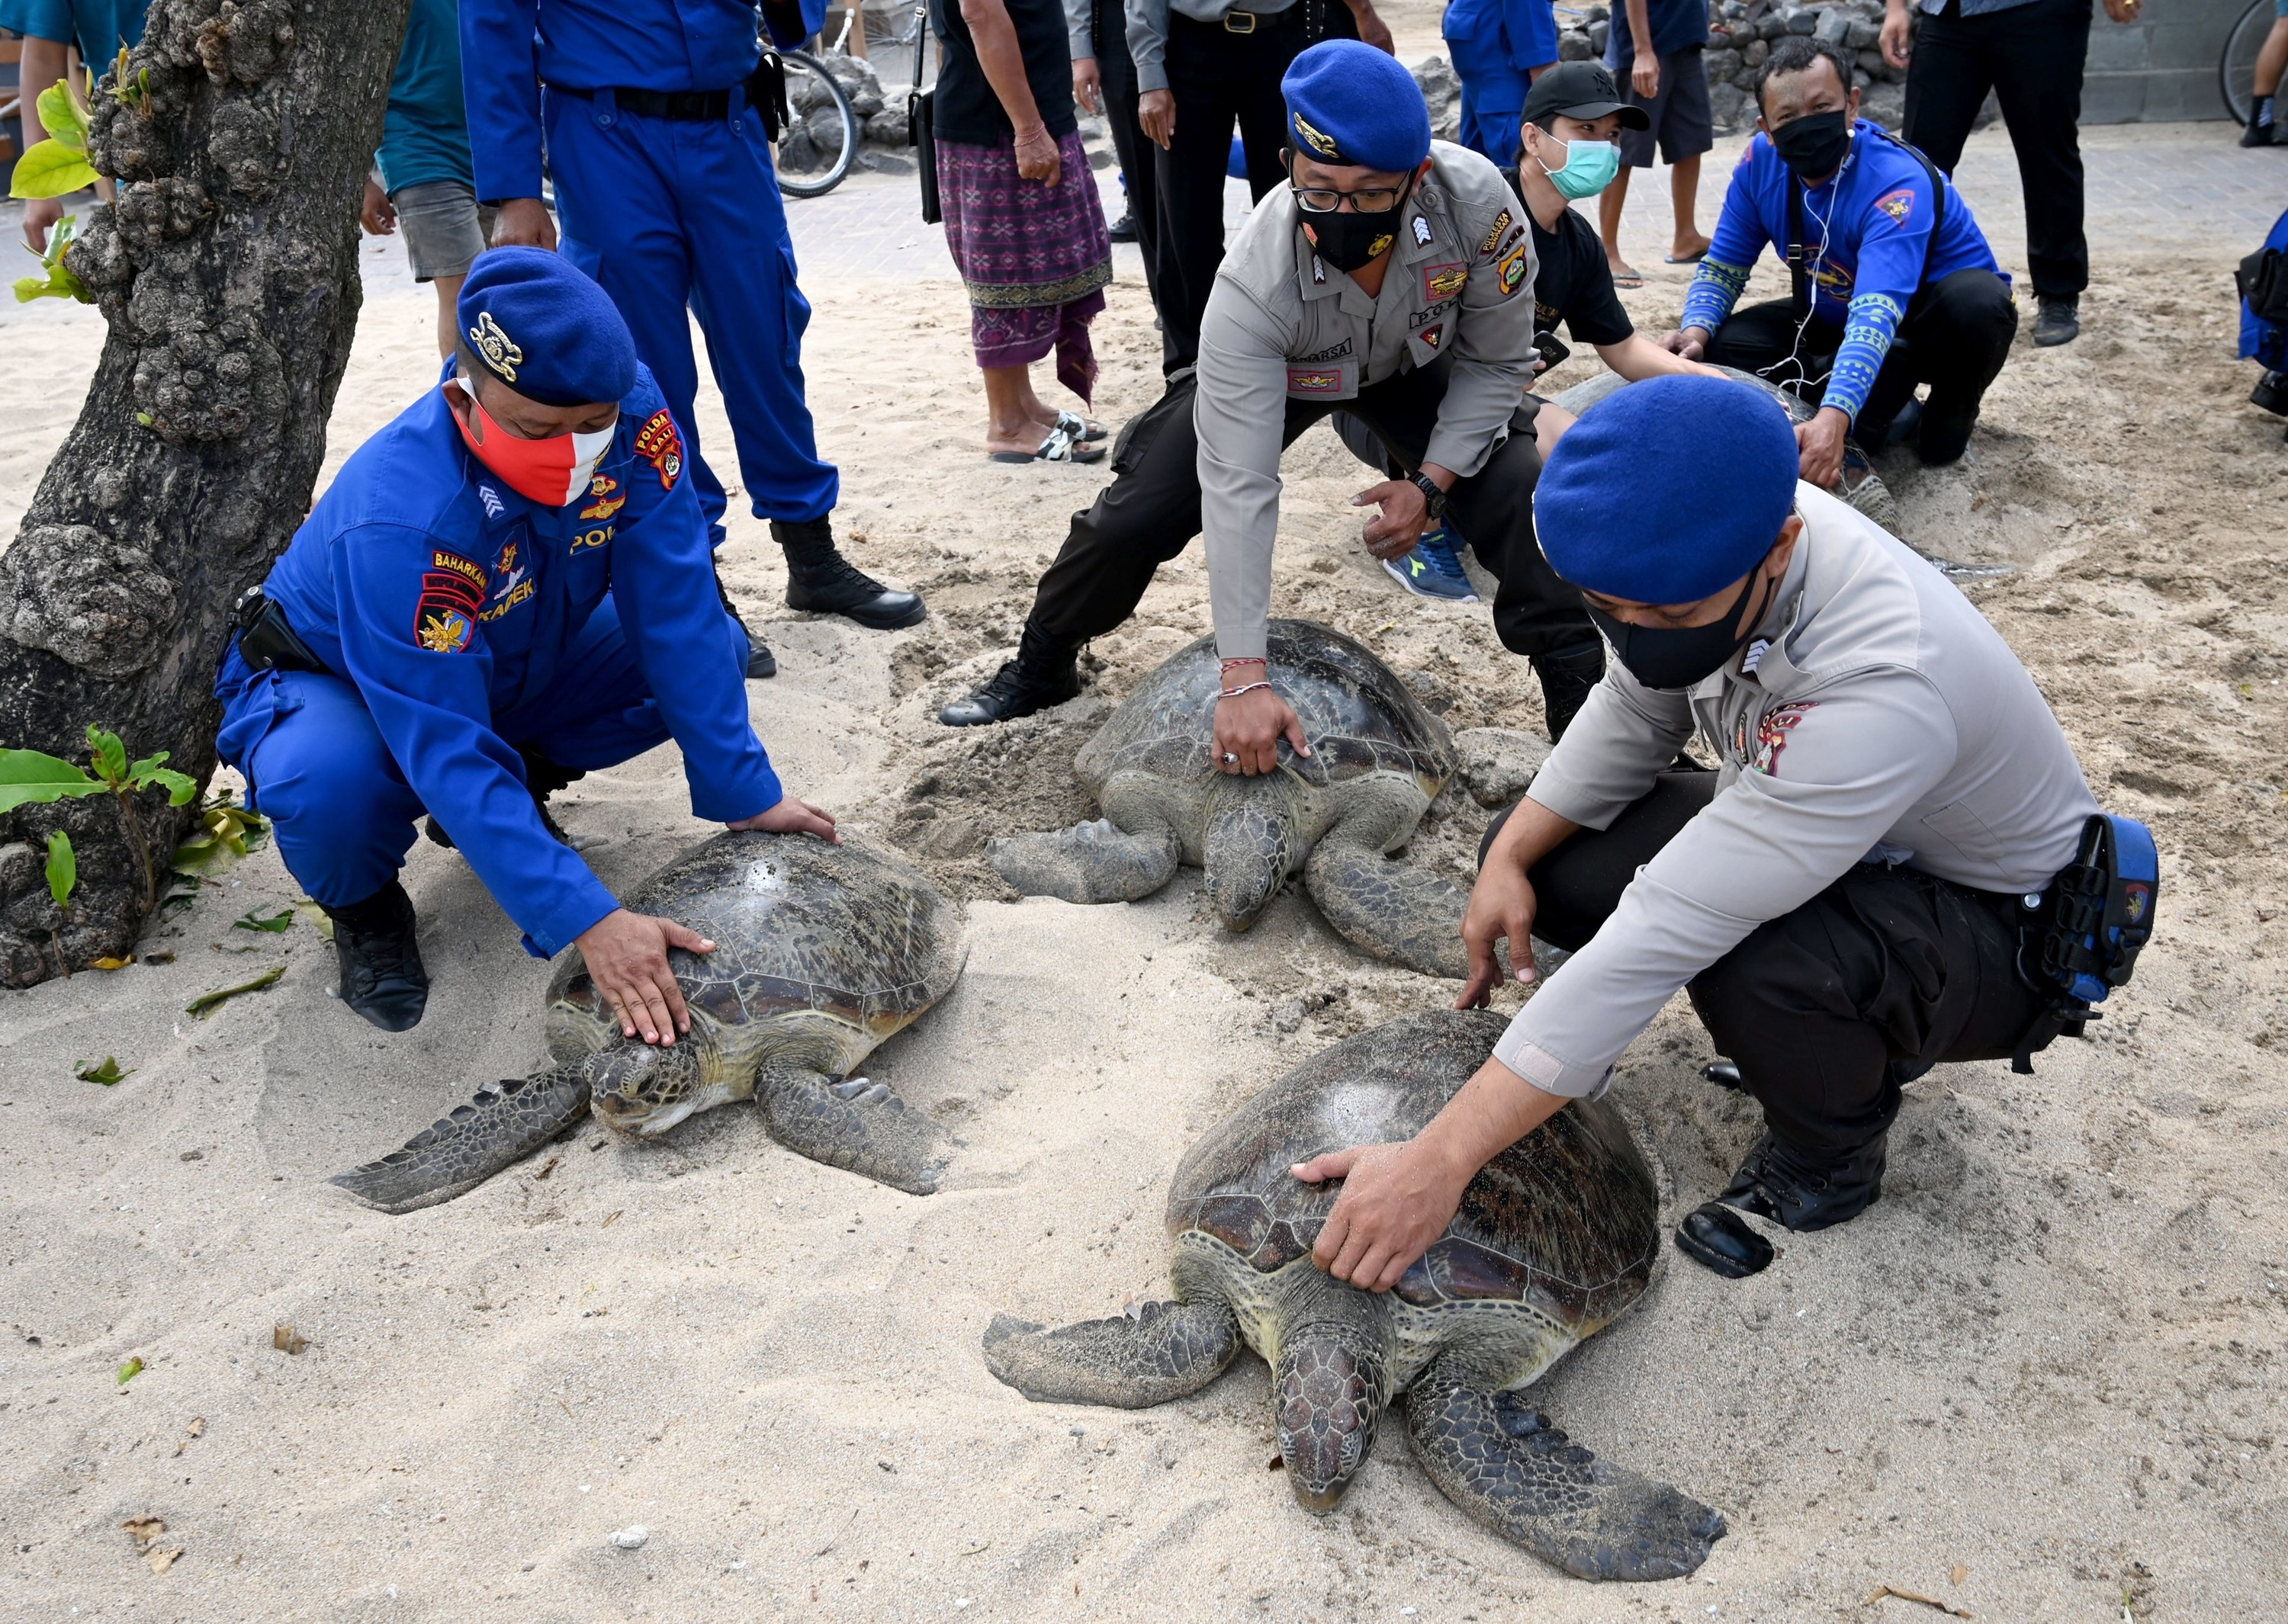 Men in uniforms and face masks place their hands on the shells of three large sea turtles on the beach